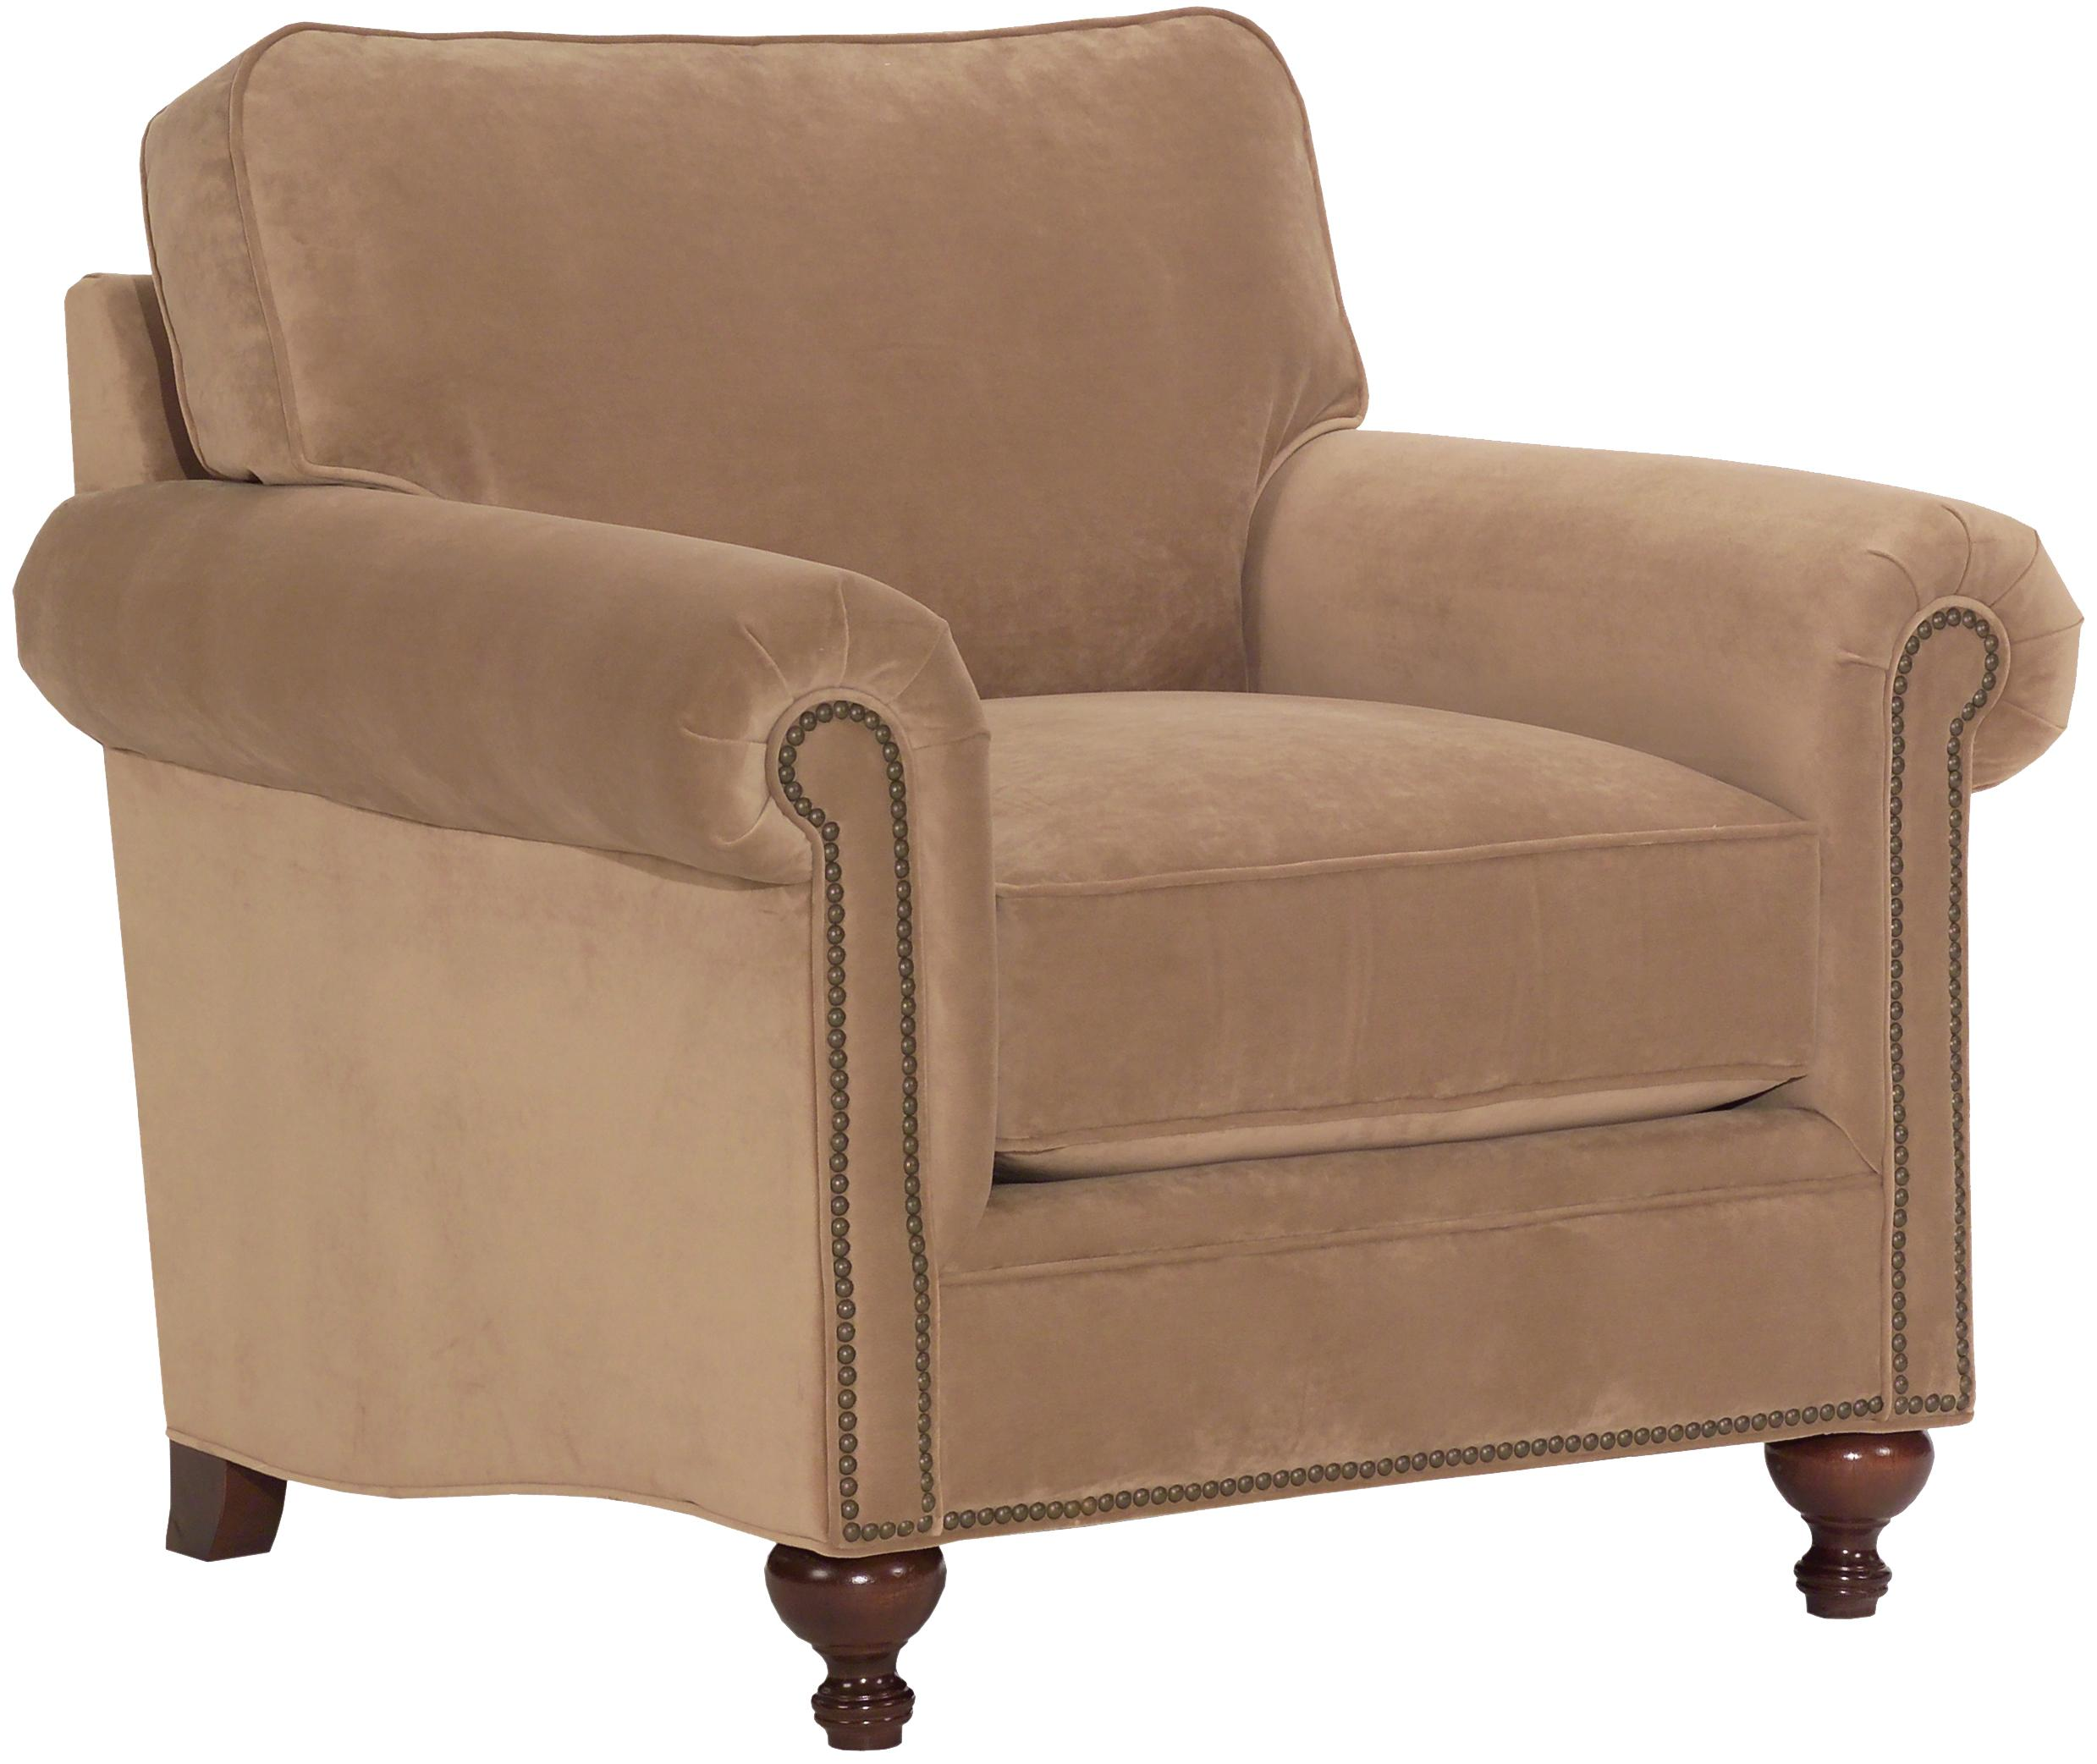 Broyhill Armchair: Broyhill Furniture Harrison Traditional Style Chair With